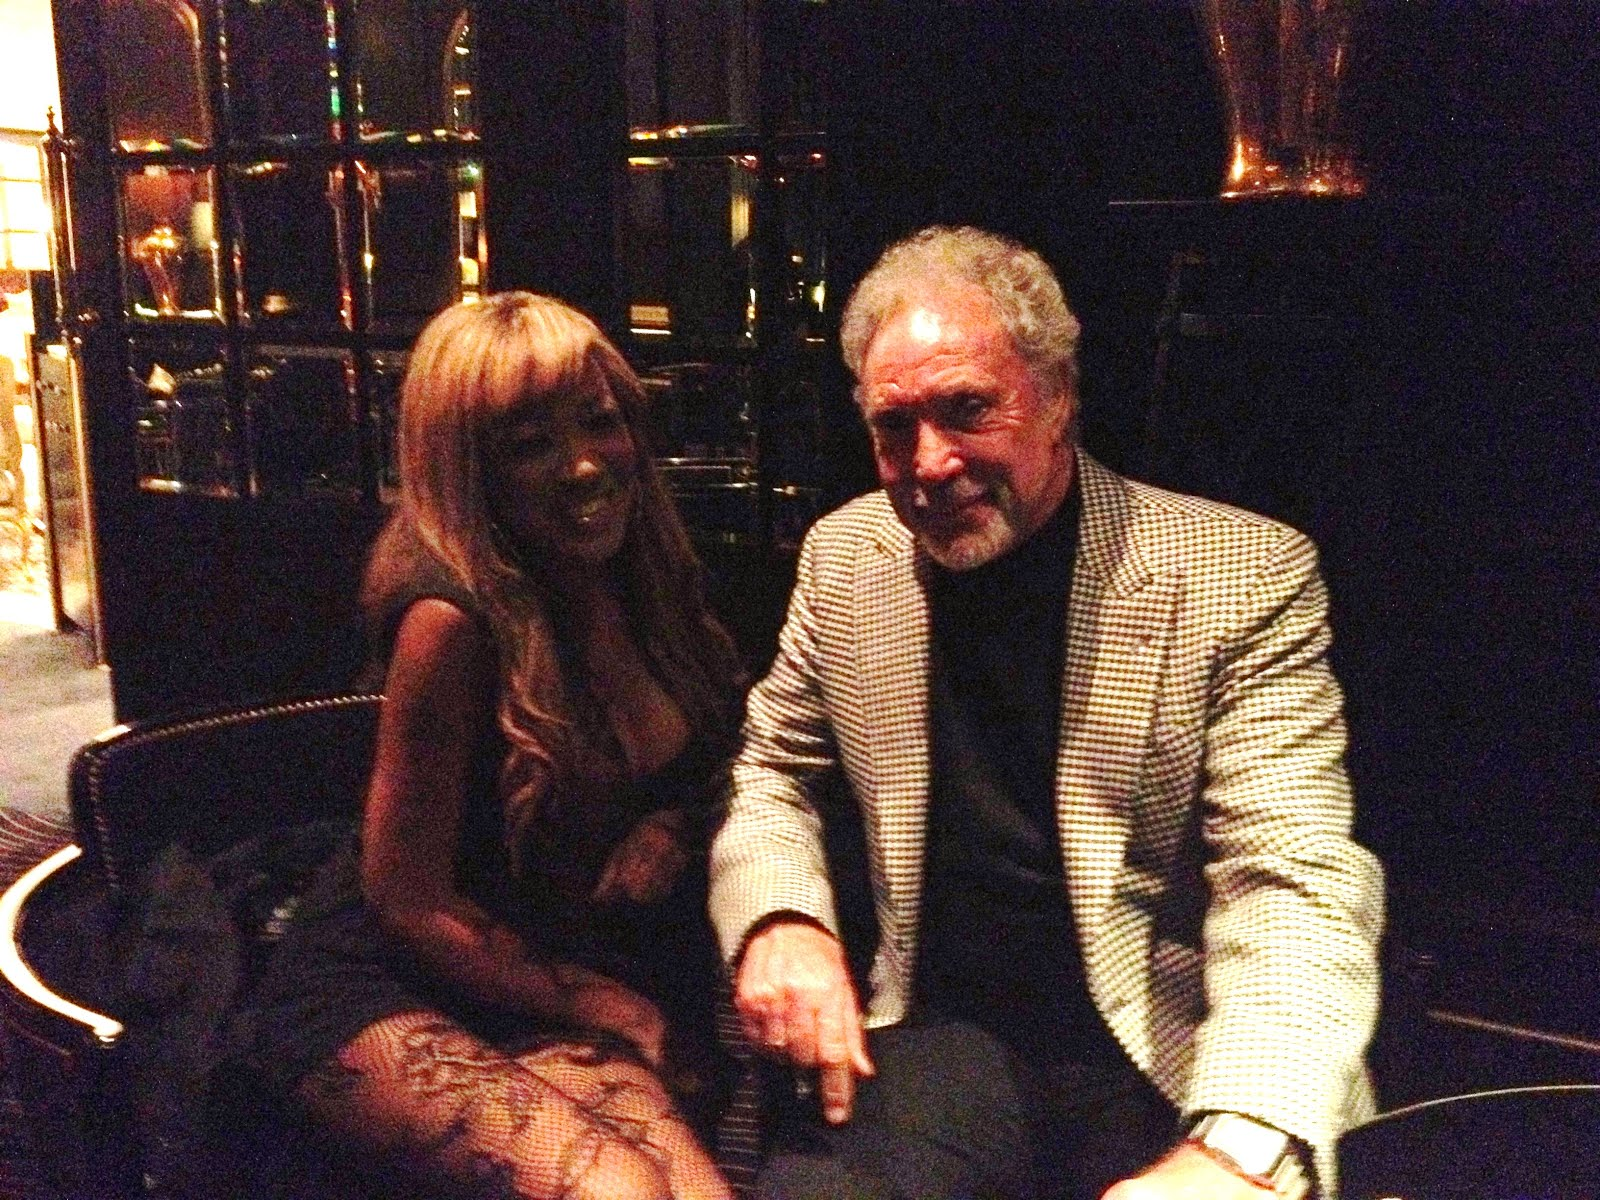 #TomJones with me @ The Savoy though